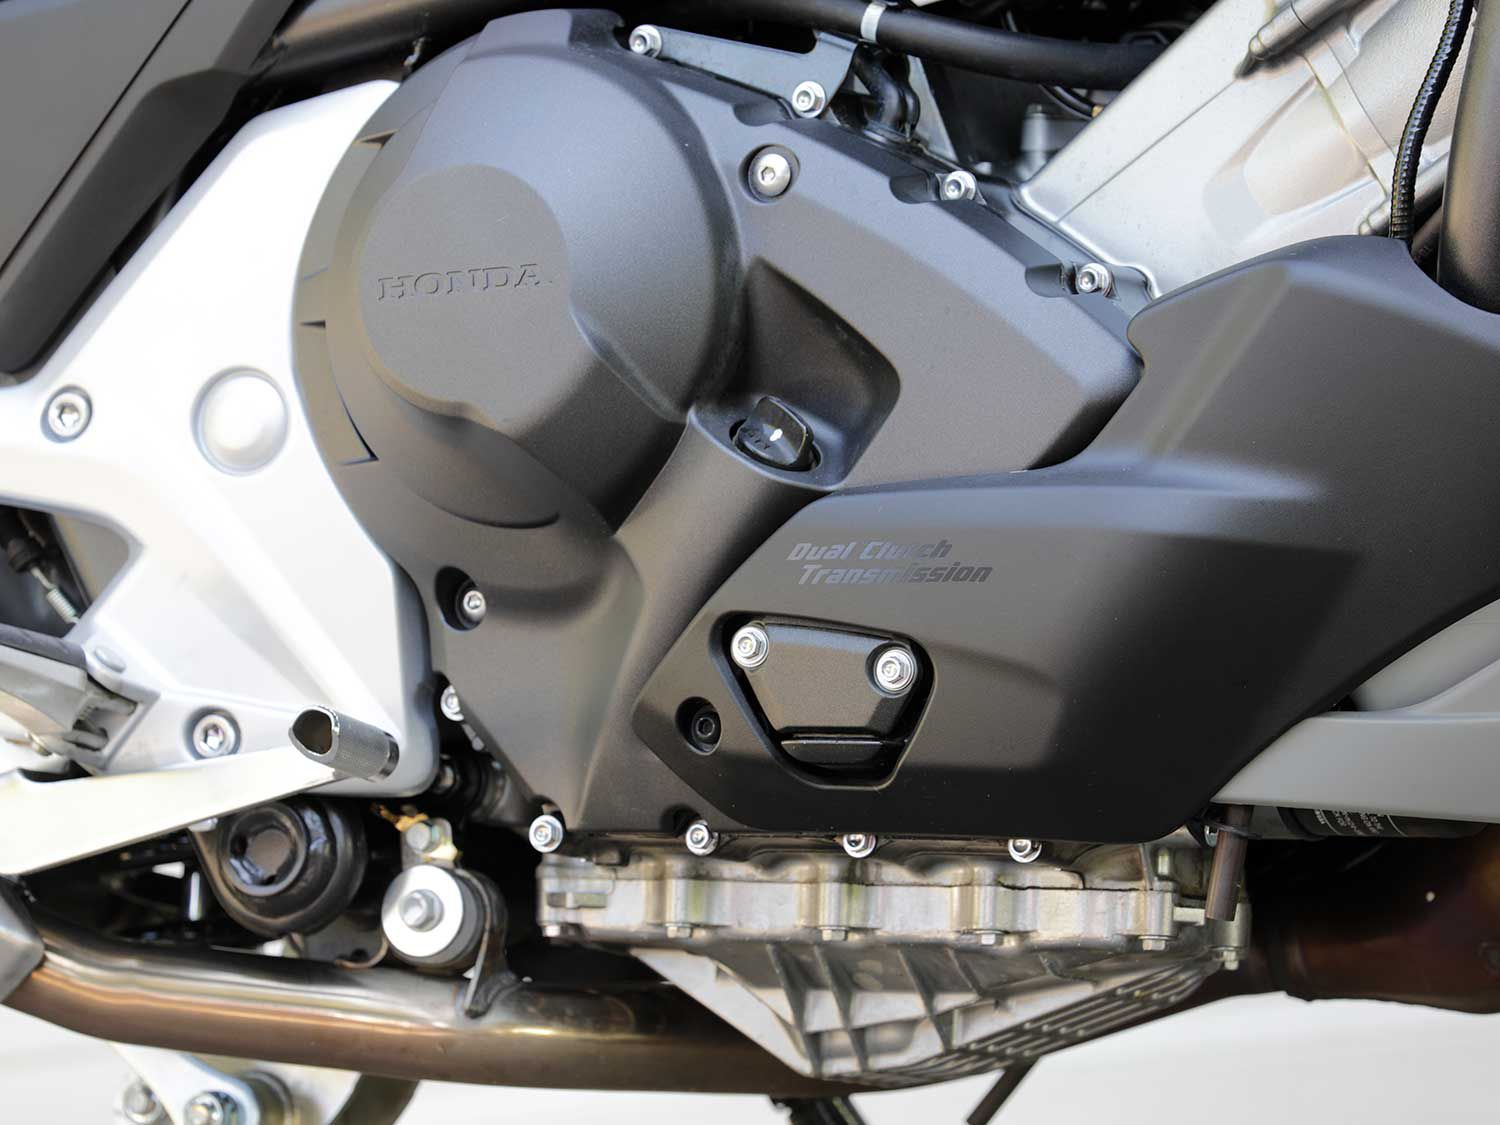 Honda's optional Dual Clutch Transmission makes for an even easier riding experience.